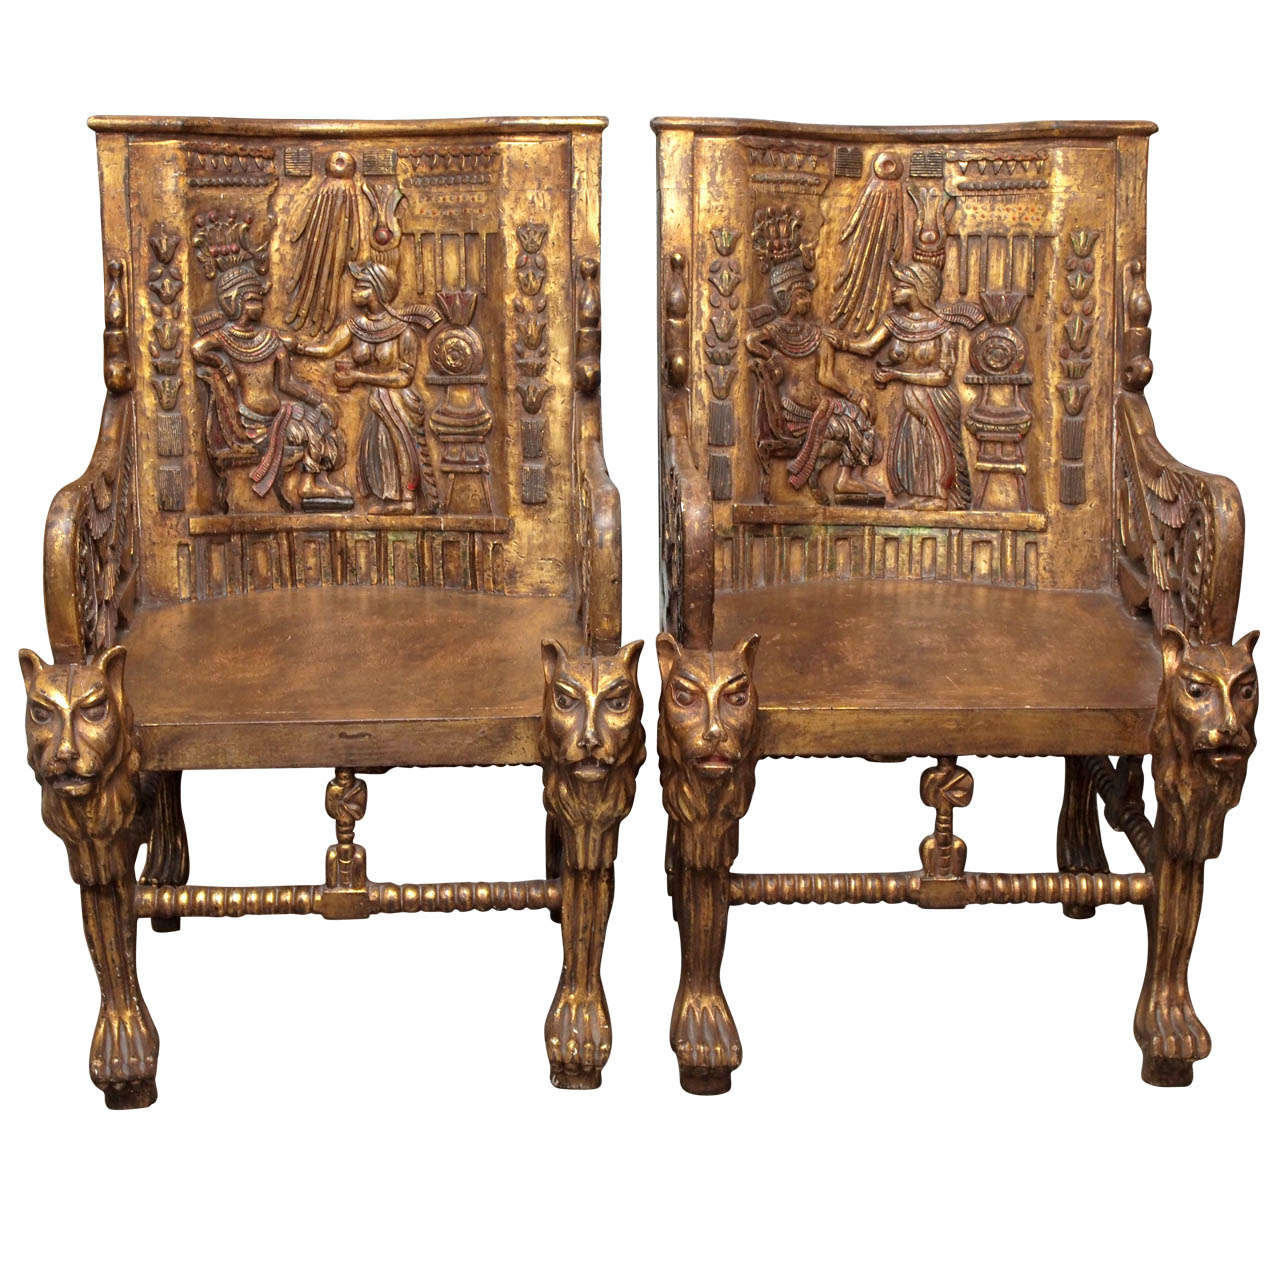 Pair Of Egyptian Revival Giltwood Throne Chairs At 1stdibs